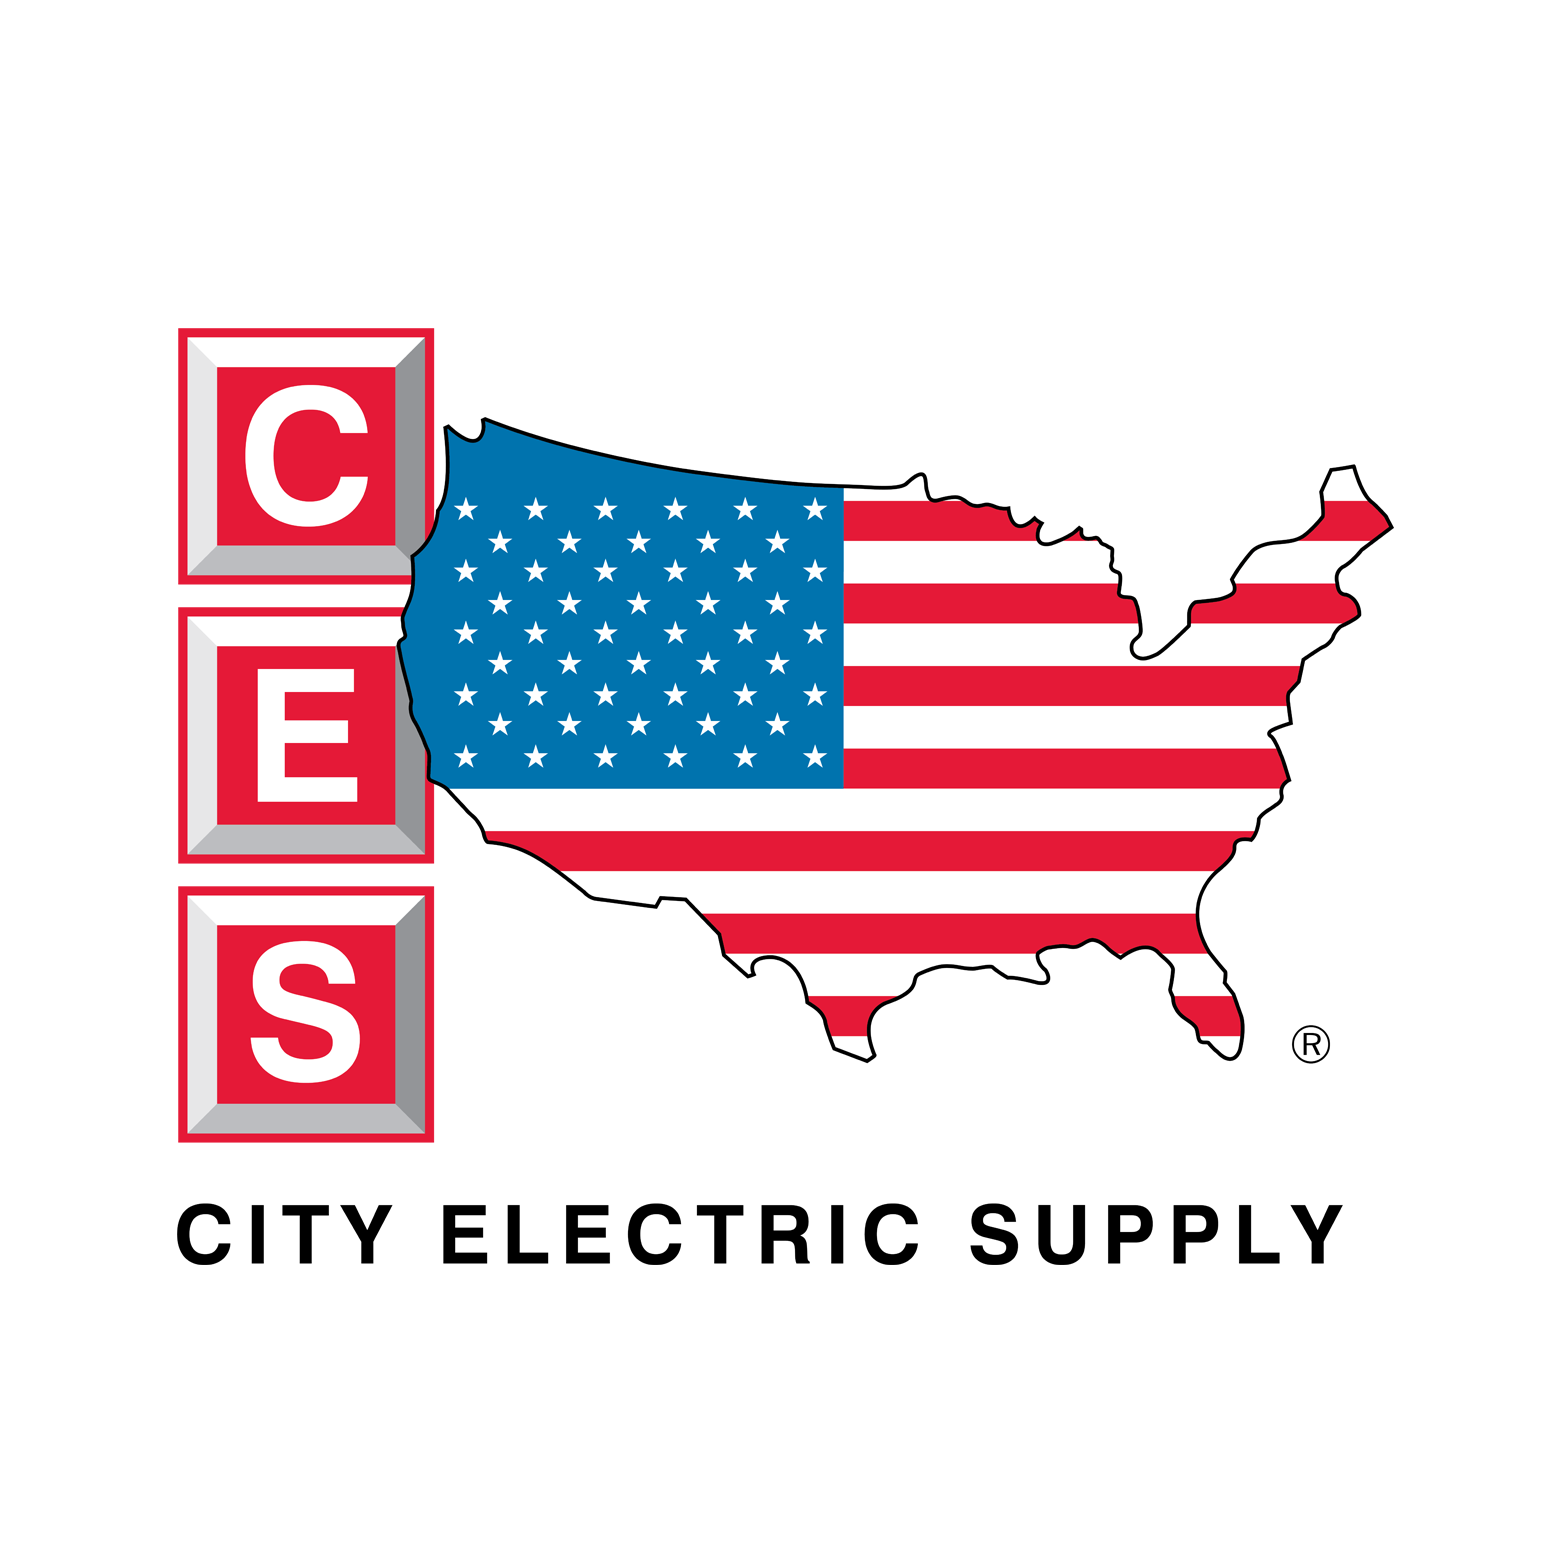 City Electric Supply Elizabeth City